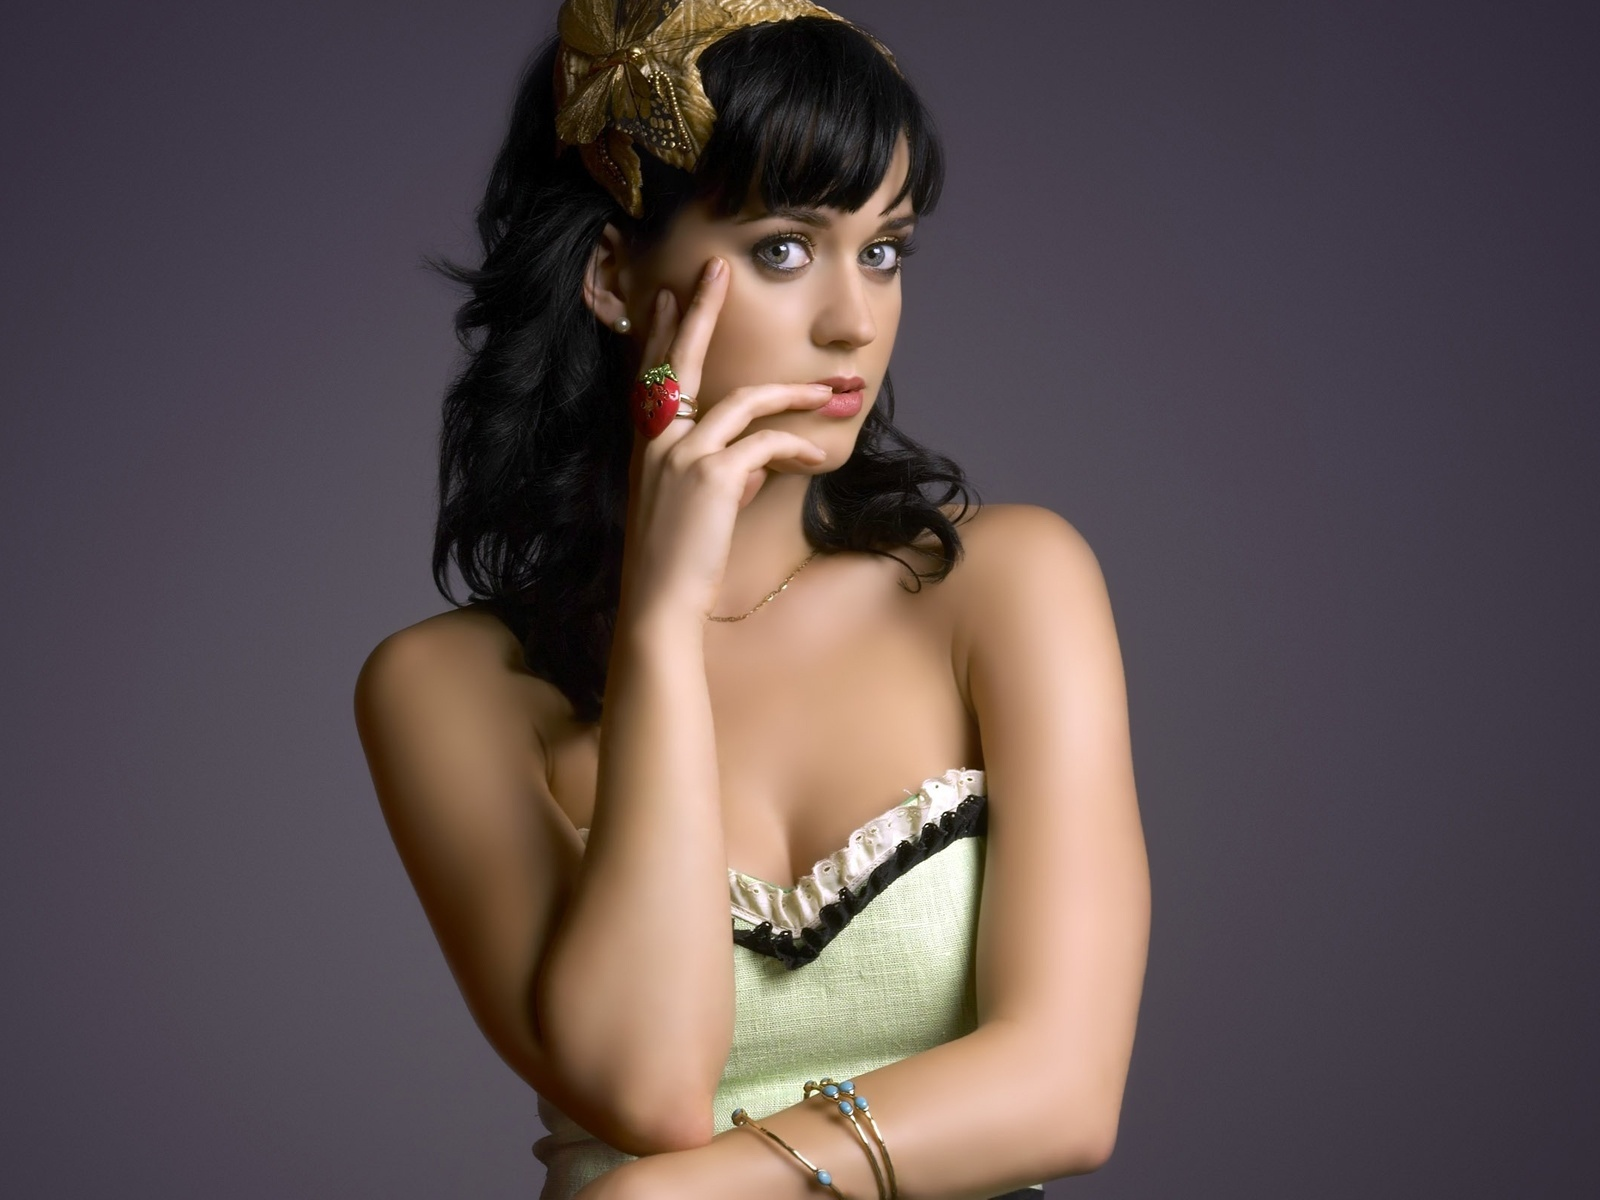 Katy Perry - The Best Pictures